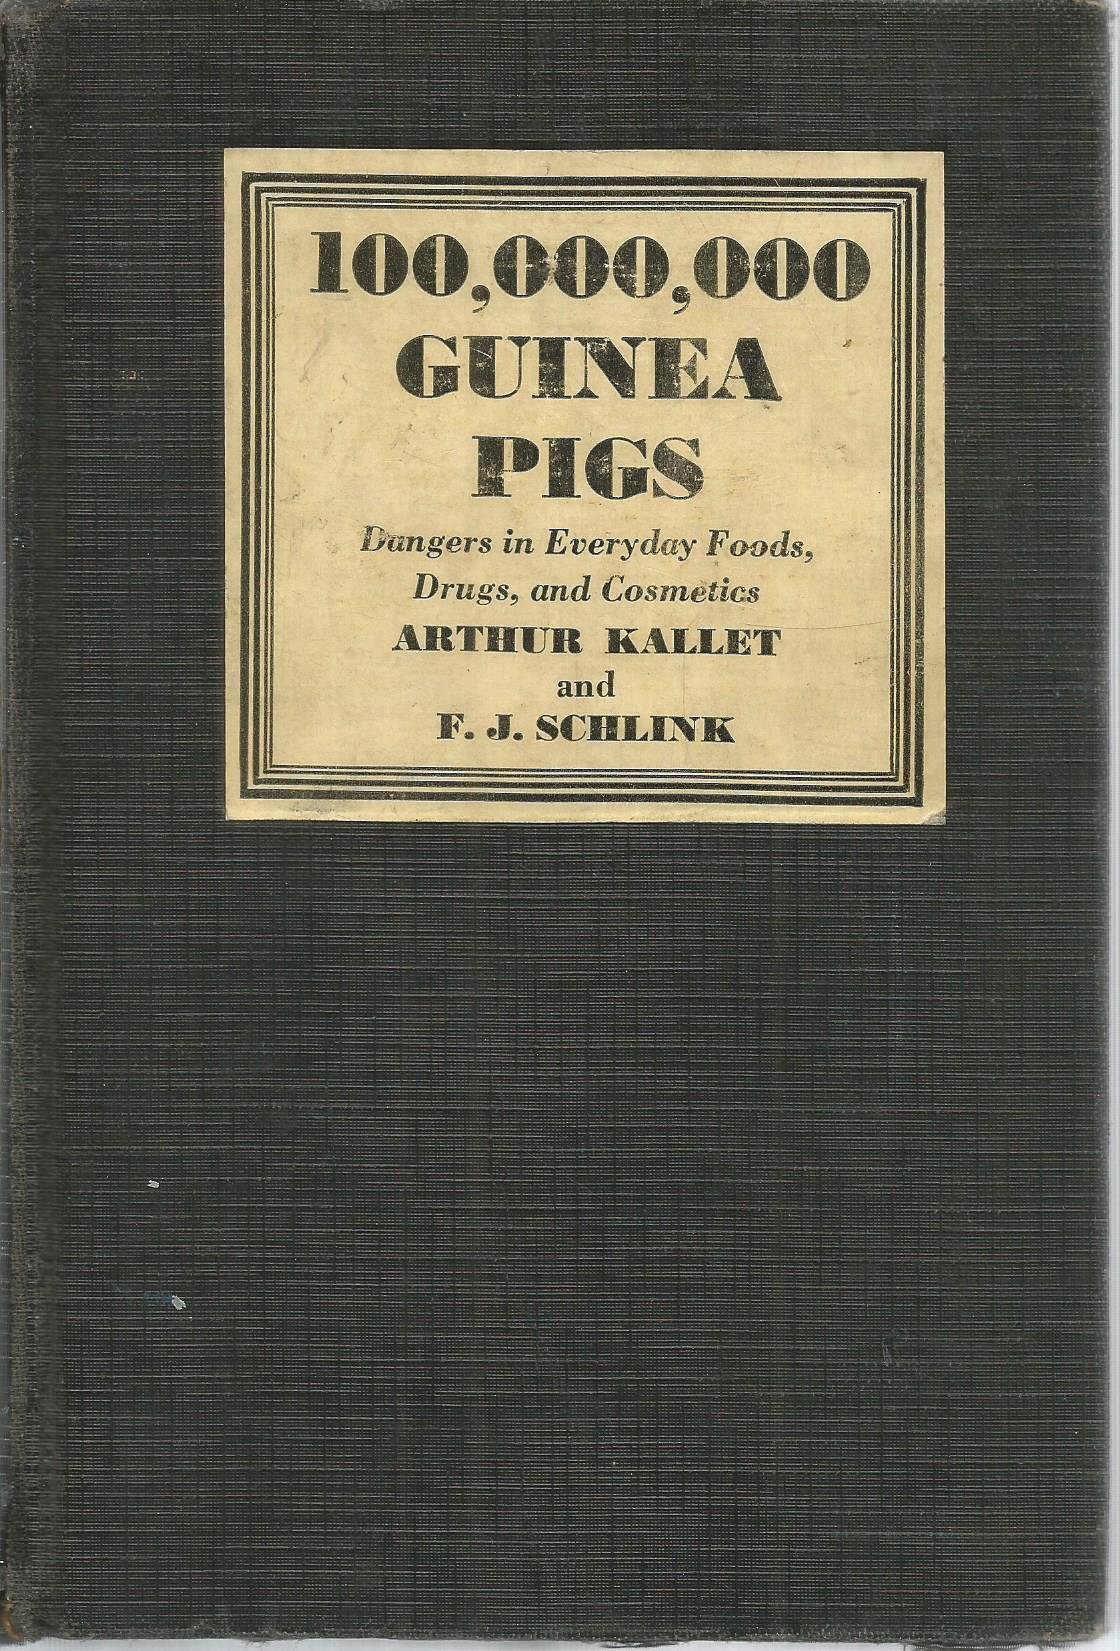 100, 000, 000 Guinea Pigs Dangers Is Everyday Foods, Drugs, and Cosmetics:  Arthur Kallet and F. J. Schlink: Amazon.com: Books